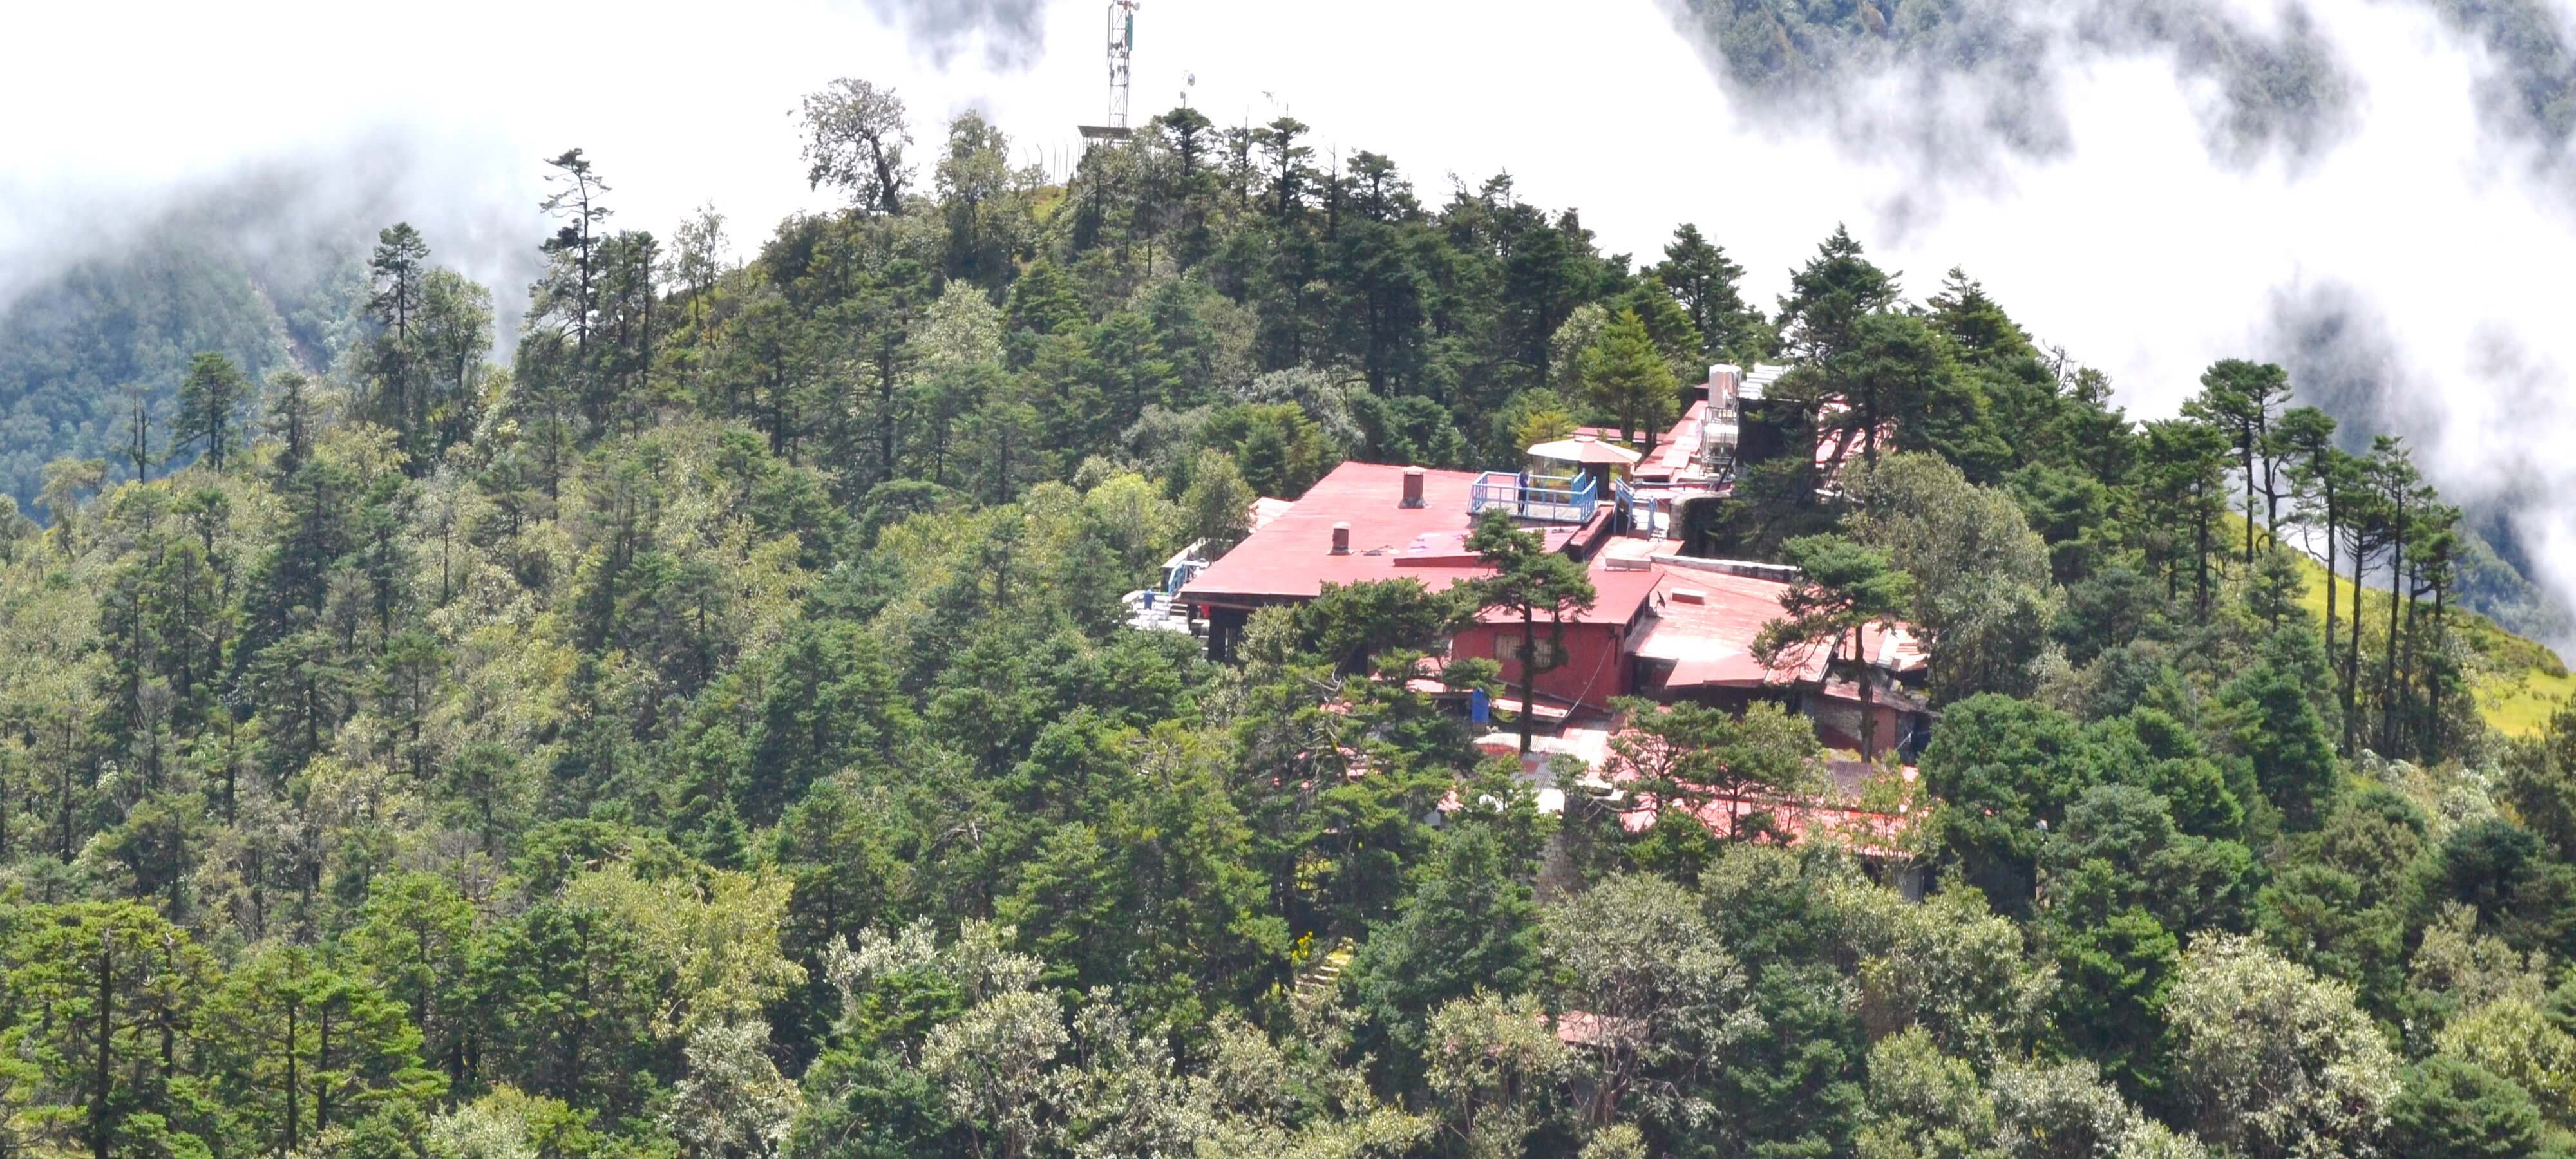 Everest view hotel by Helicopter